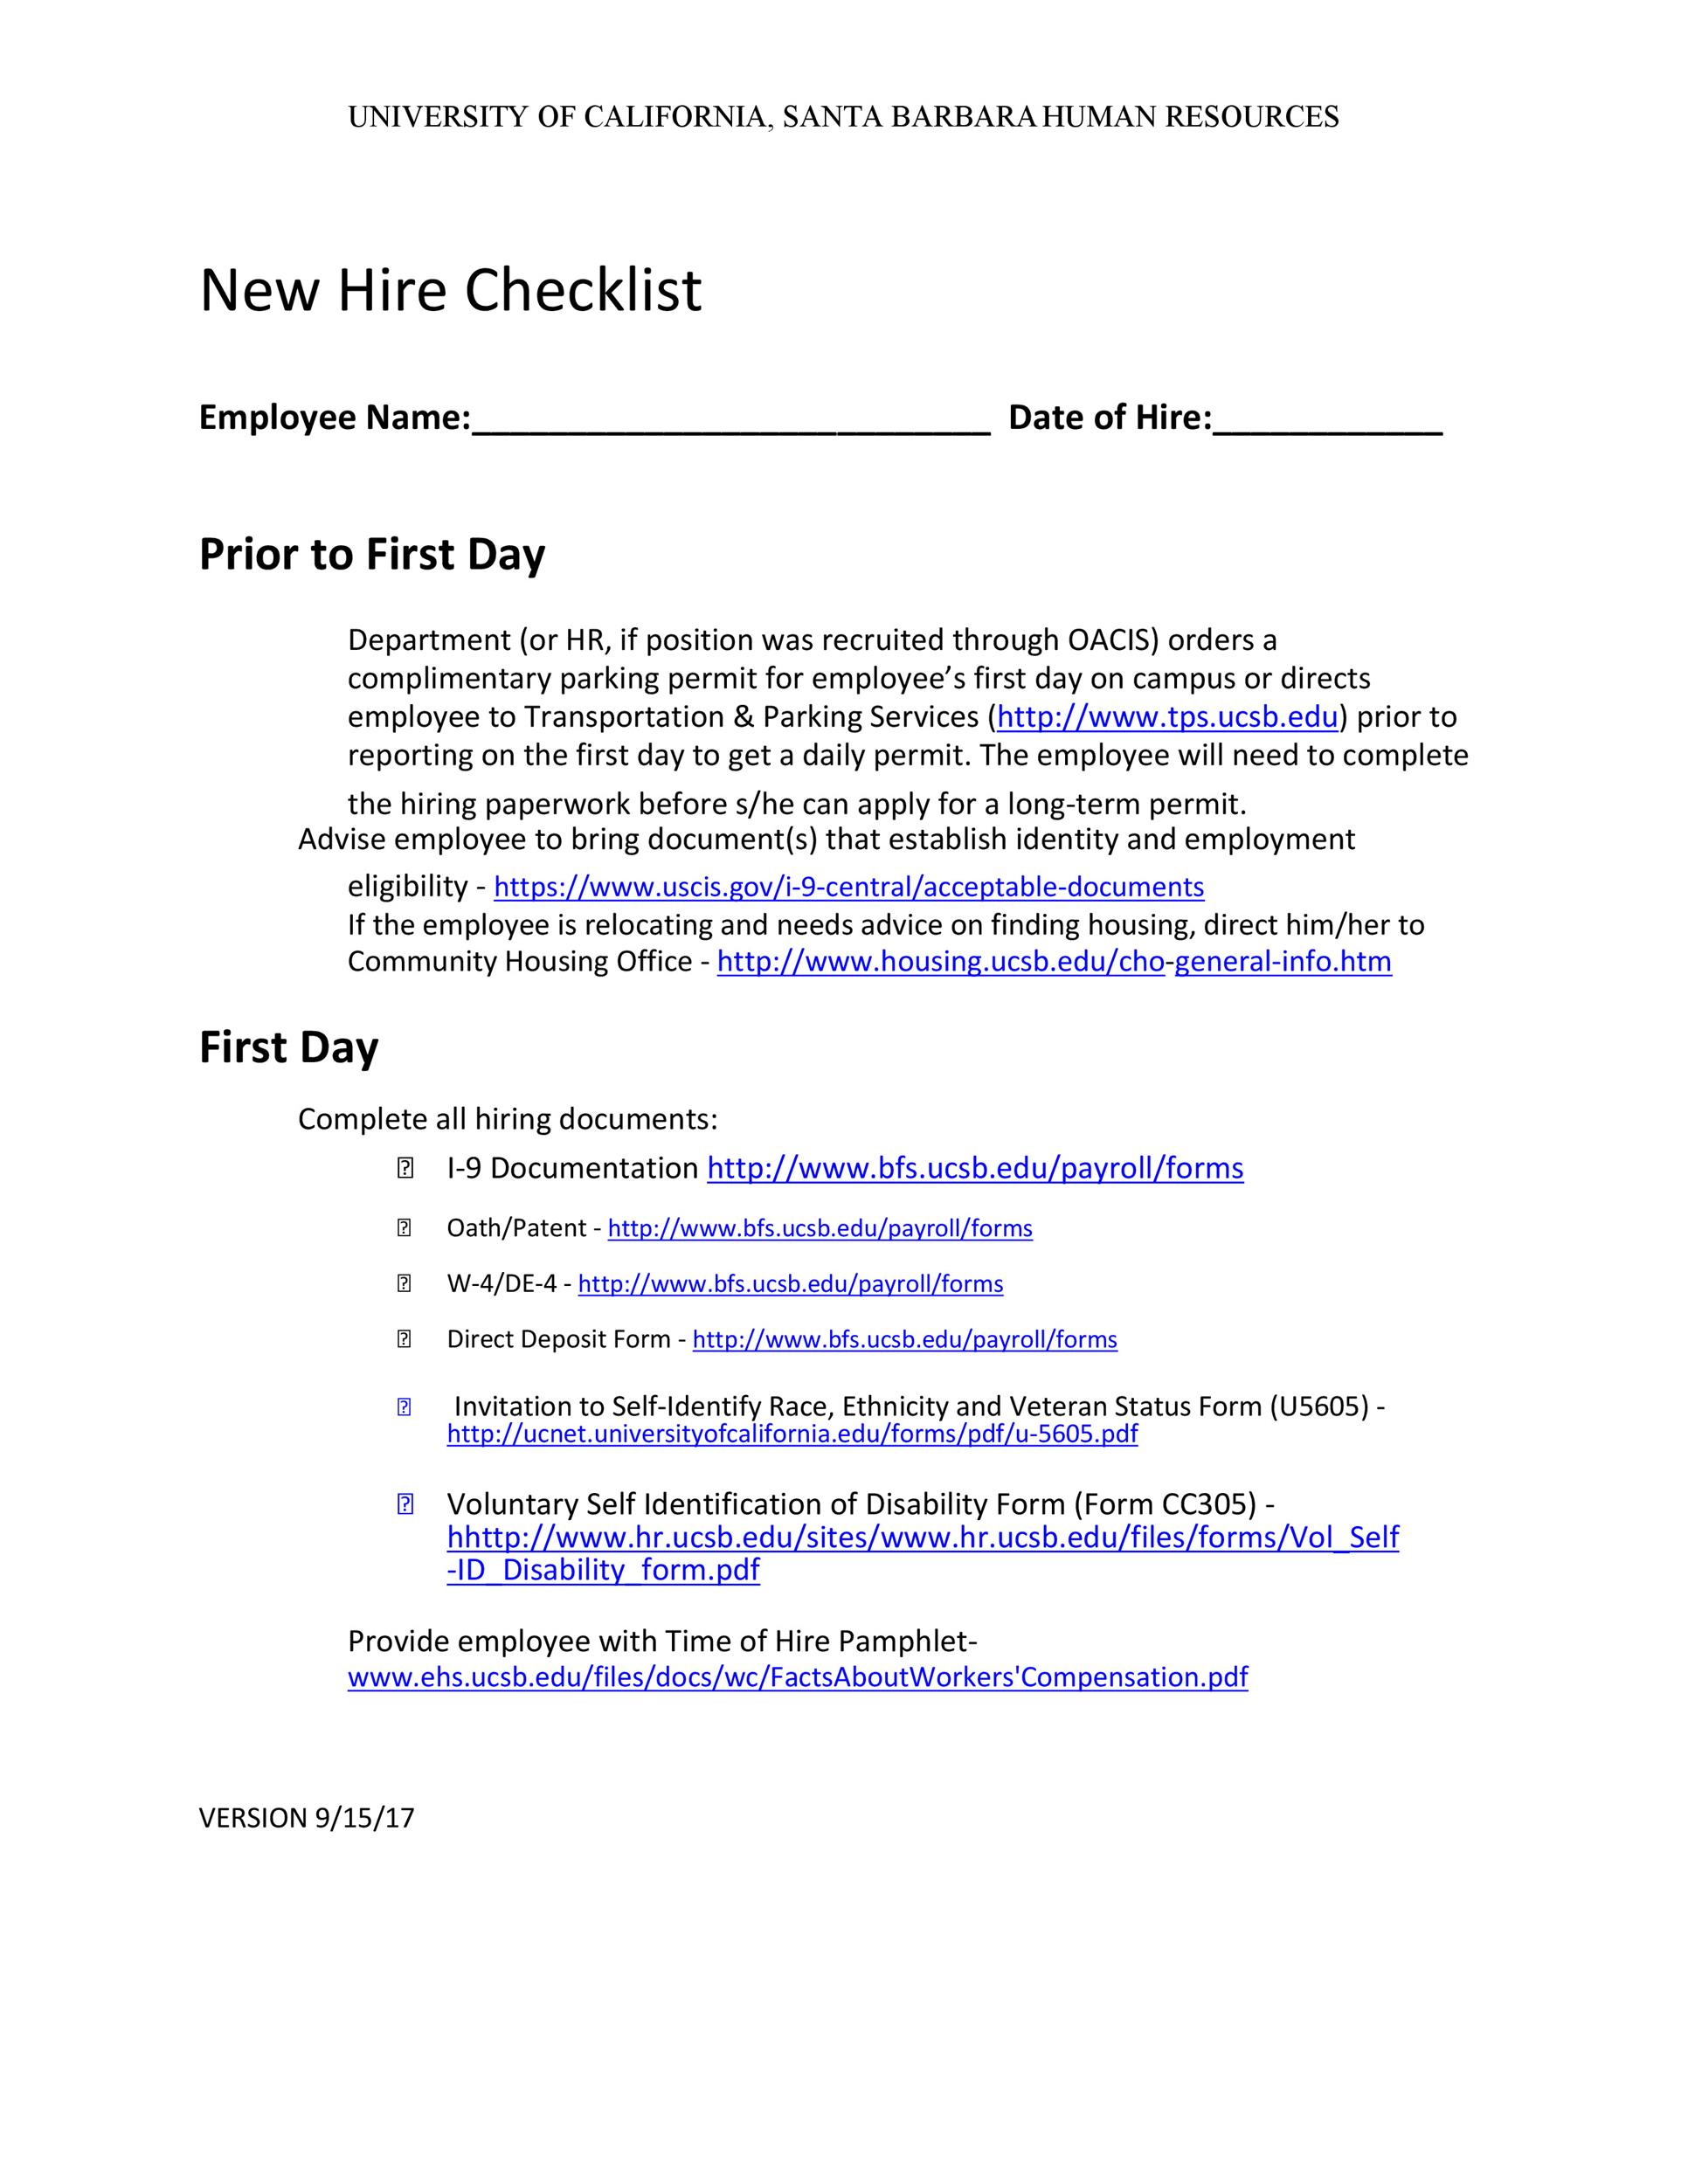 Free new hire checklist 04